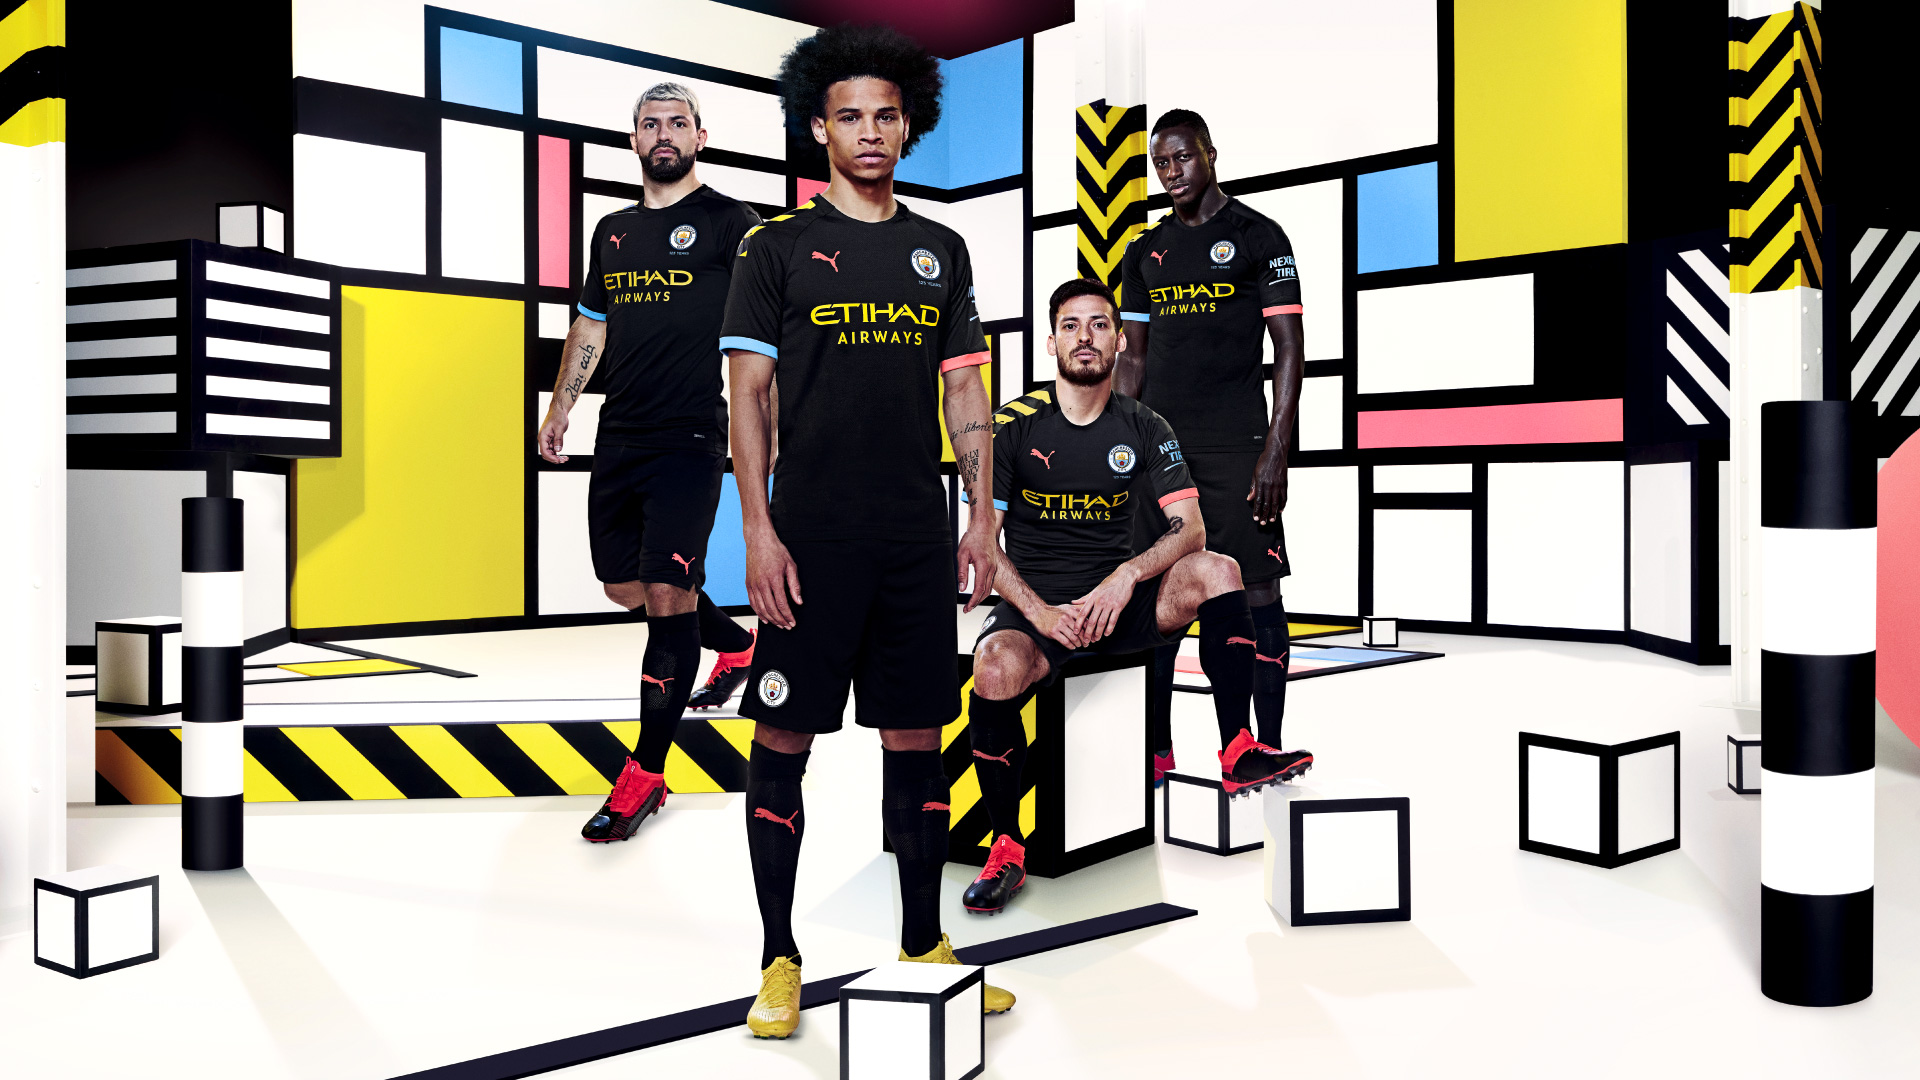 19AW_Social_TS_Football_Manchester-City_Away_1920x1080px_Key-Visual_Player-Ext-V.jpg